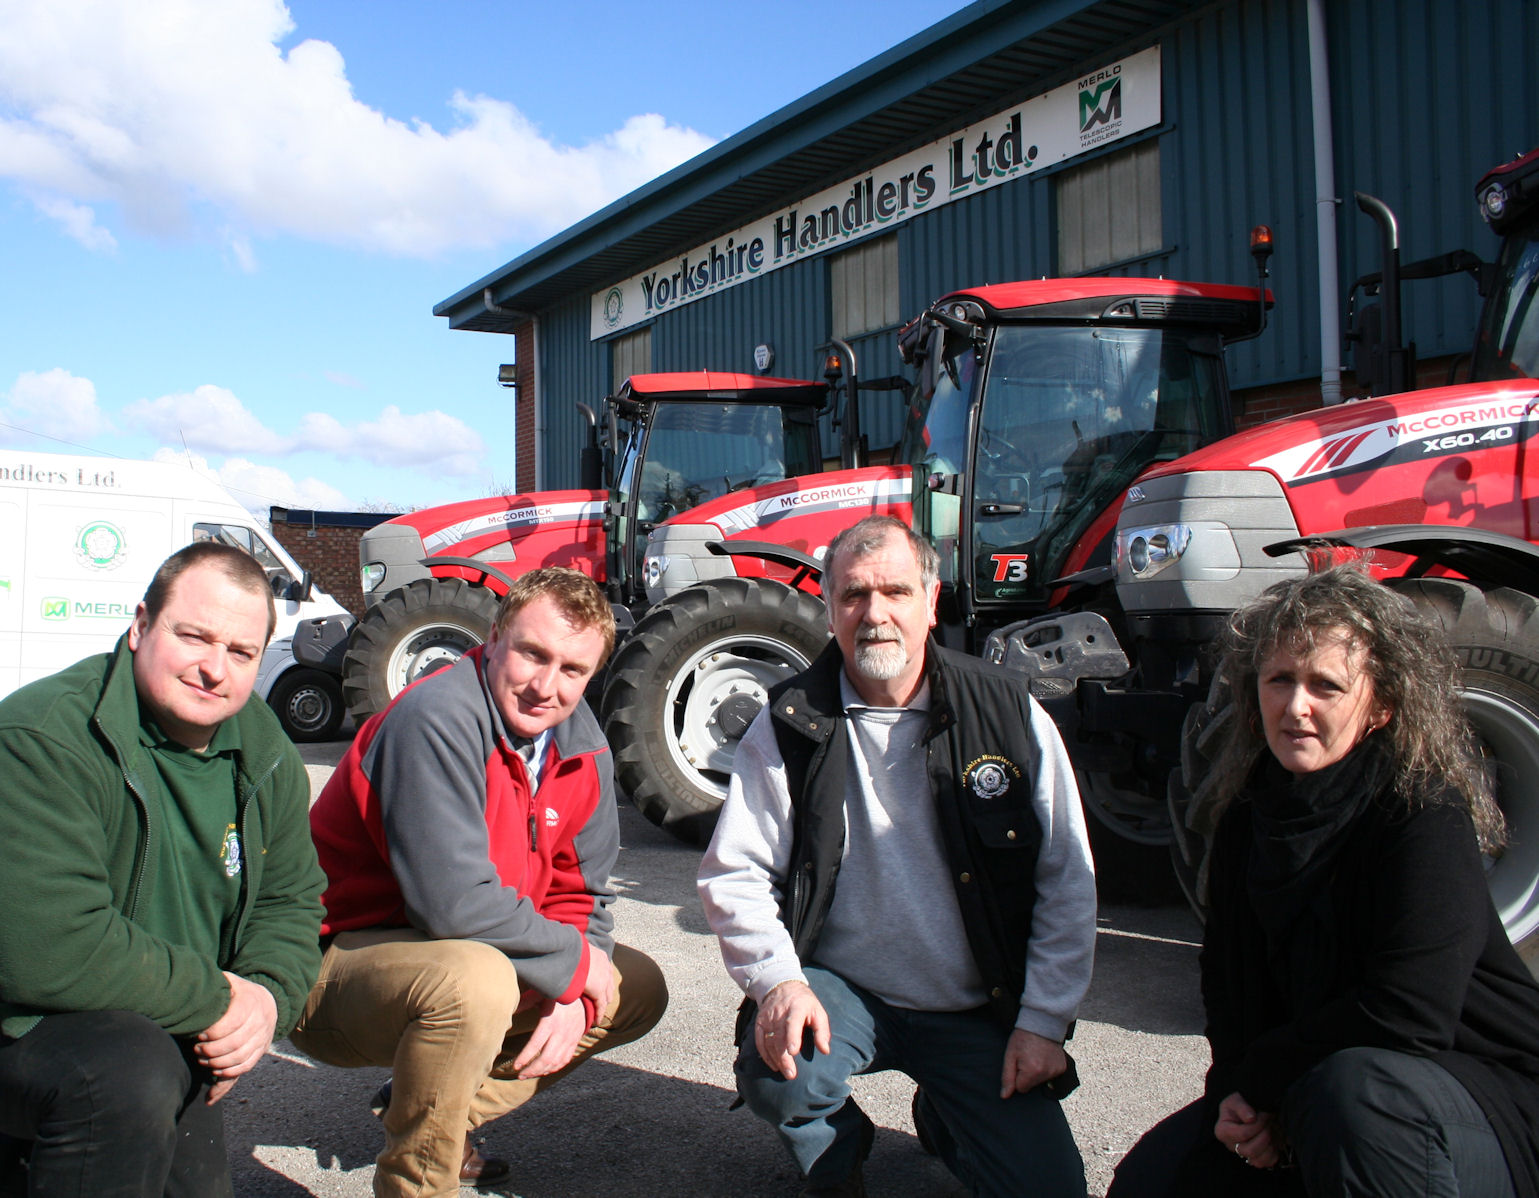 Phil and Rhonda Robinson (right) of new McCormick sales and service support dealer Yorkshire Handlers, Murton near York, with Lee Richardson, service manager (left) and Phil Maw of McCormick distributor AgriArgo UK.